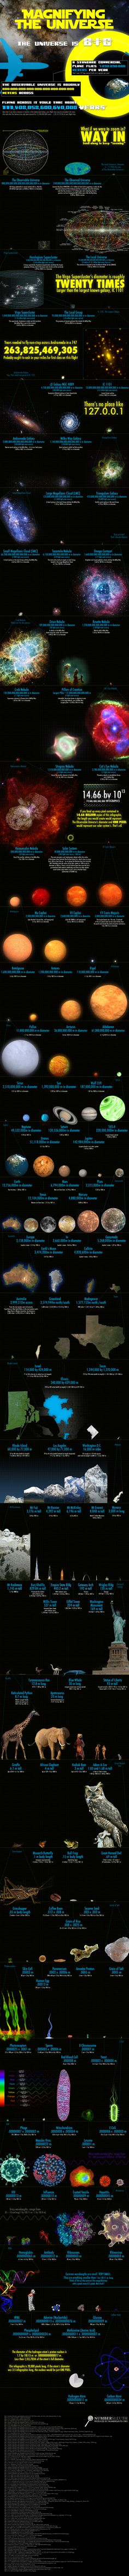 Great stuff to compare how extensive our universe is. Ever wonder how big the universe is?